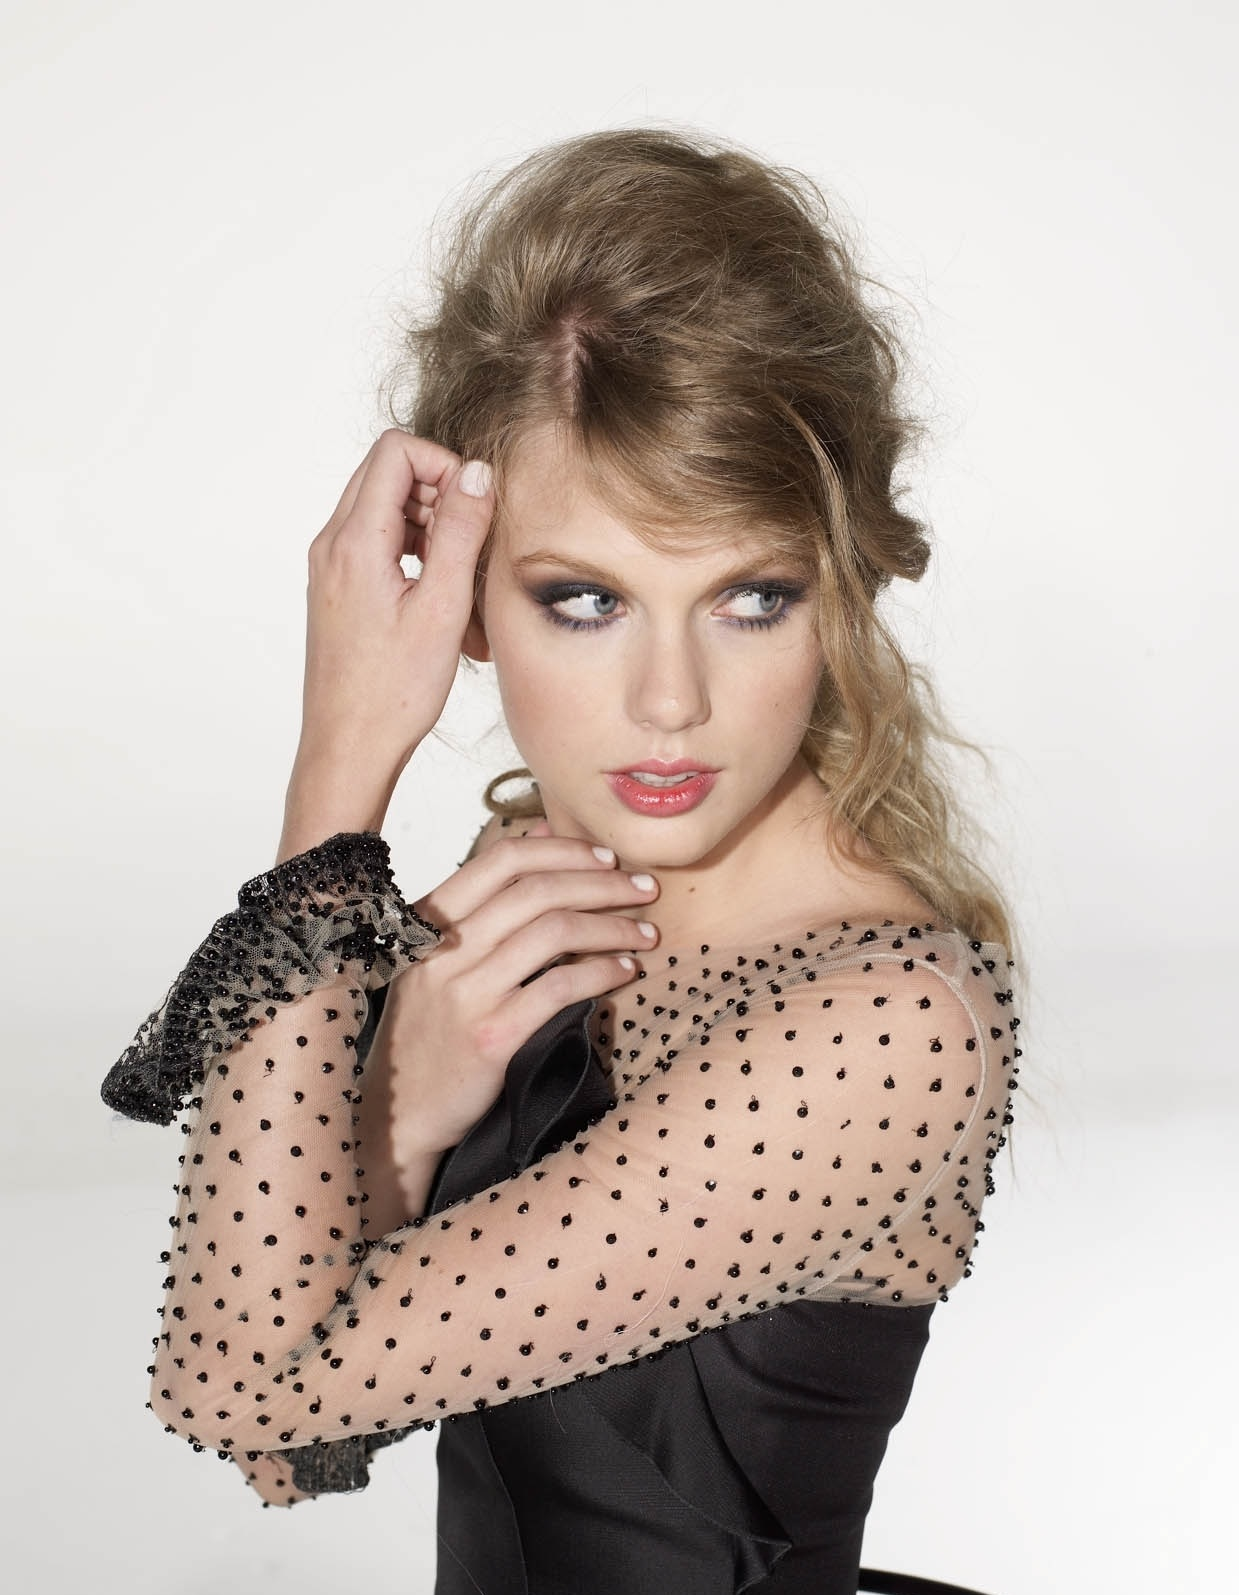 http://1.bp.blogspot.com/-NWaQSq8w0DM/Tl9VheESz4I/AAAAAAAAAaM/2hKLTJDY6OY/s1600/Taylor-Swift-songs-about-lyrics-love-story-hairstyle%2B%2525285%252529.jpg